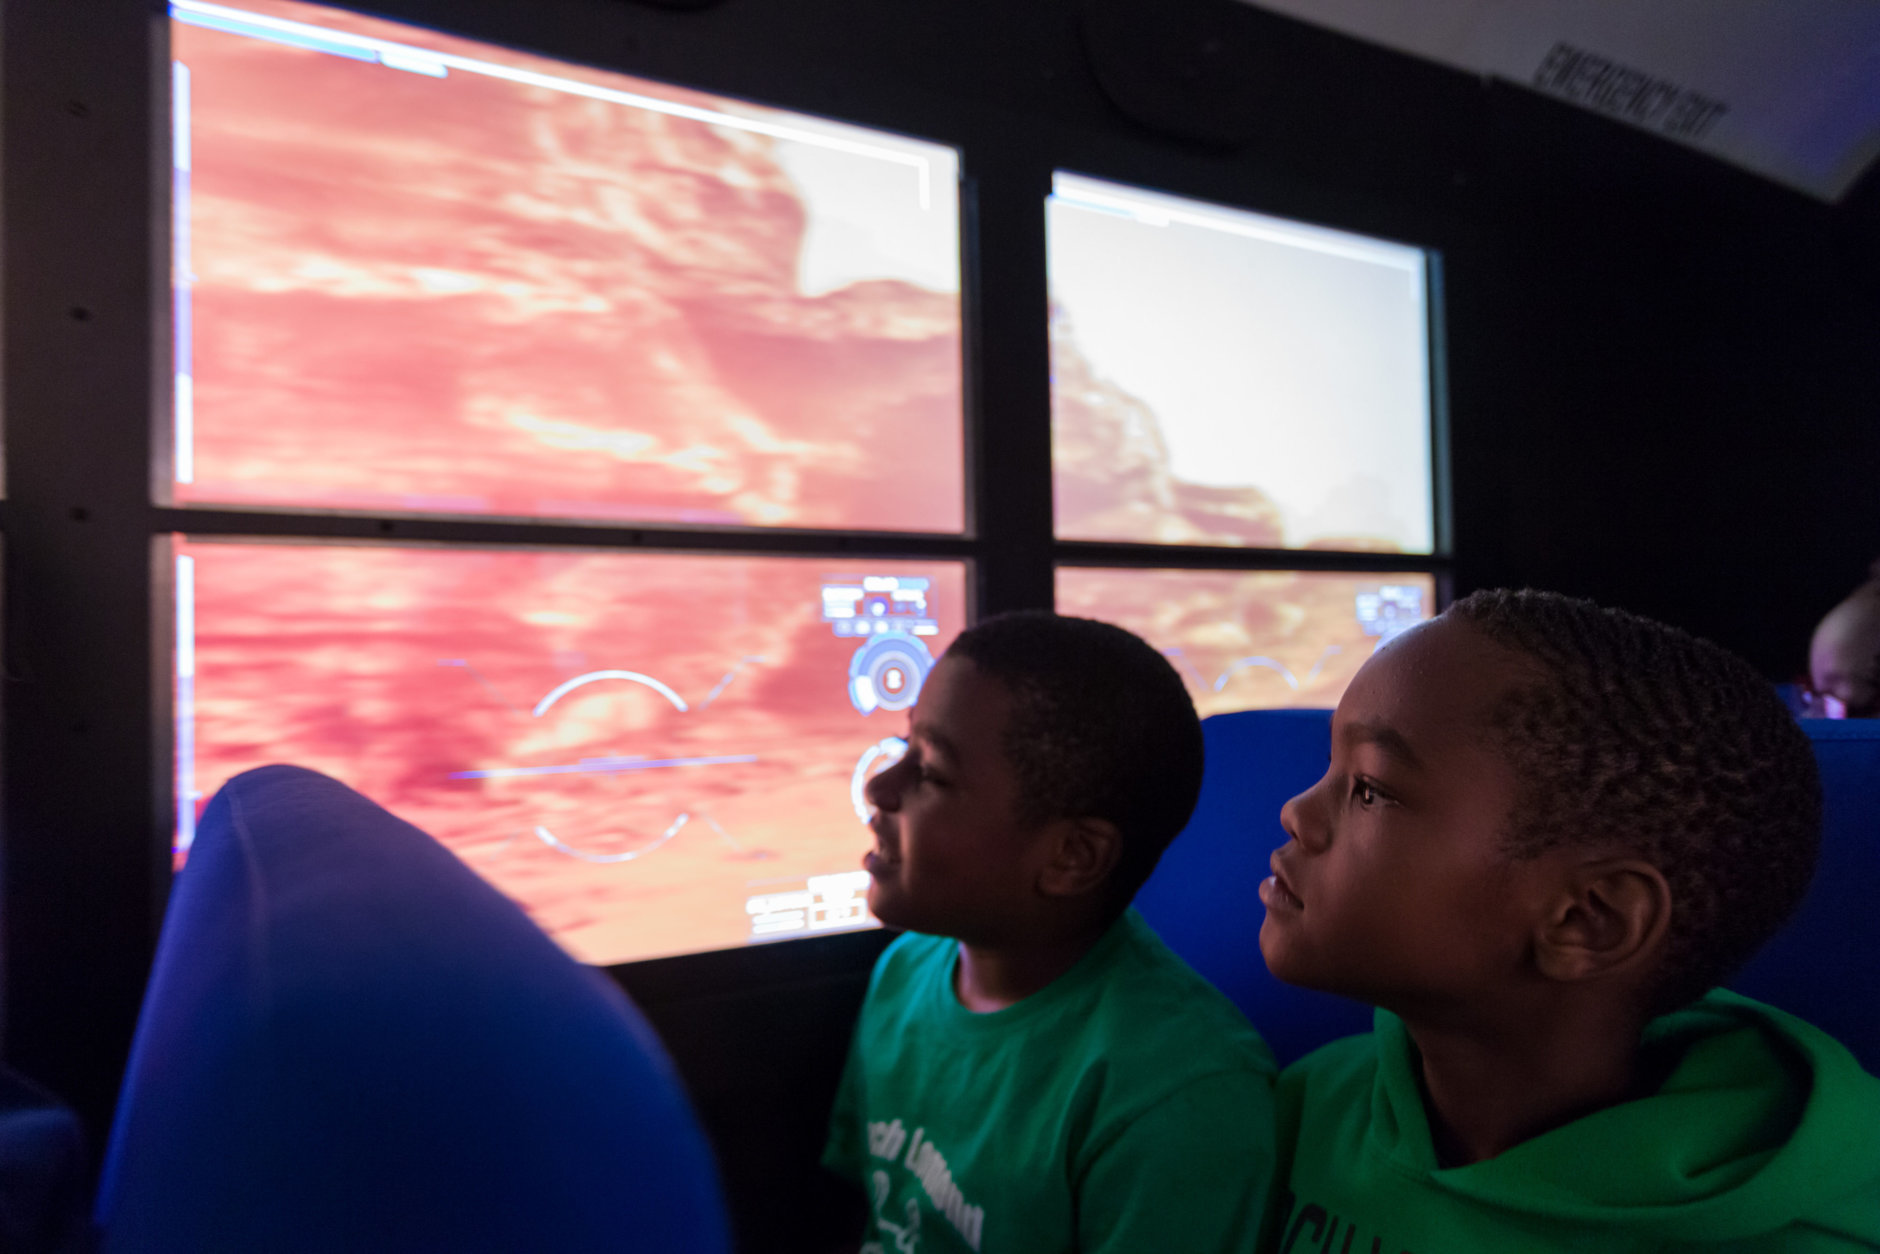 Amos Kear, 9, left, and Nate Wilson, 8, look at the surface of the planet Mars, seated in the Lockheed Martin Mars Experience bus. The boys and their classmates from Virginia's Loch Lomond Elementary School robotics team were the first group of local students to visit the bus at the the Steven F. Udvar-Hazy Center in Chantilly, Virginia, Oct. 19, 2018, following a ceremony in which Lockheed Martin transferred the bus to Smithsonian's Air & Space Museum. The bus, fitted with high-definition monitors on the windows, provides visitors an opportunity to experience the Martian surface. (Air and Space photo by Daniel Soñé)